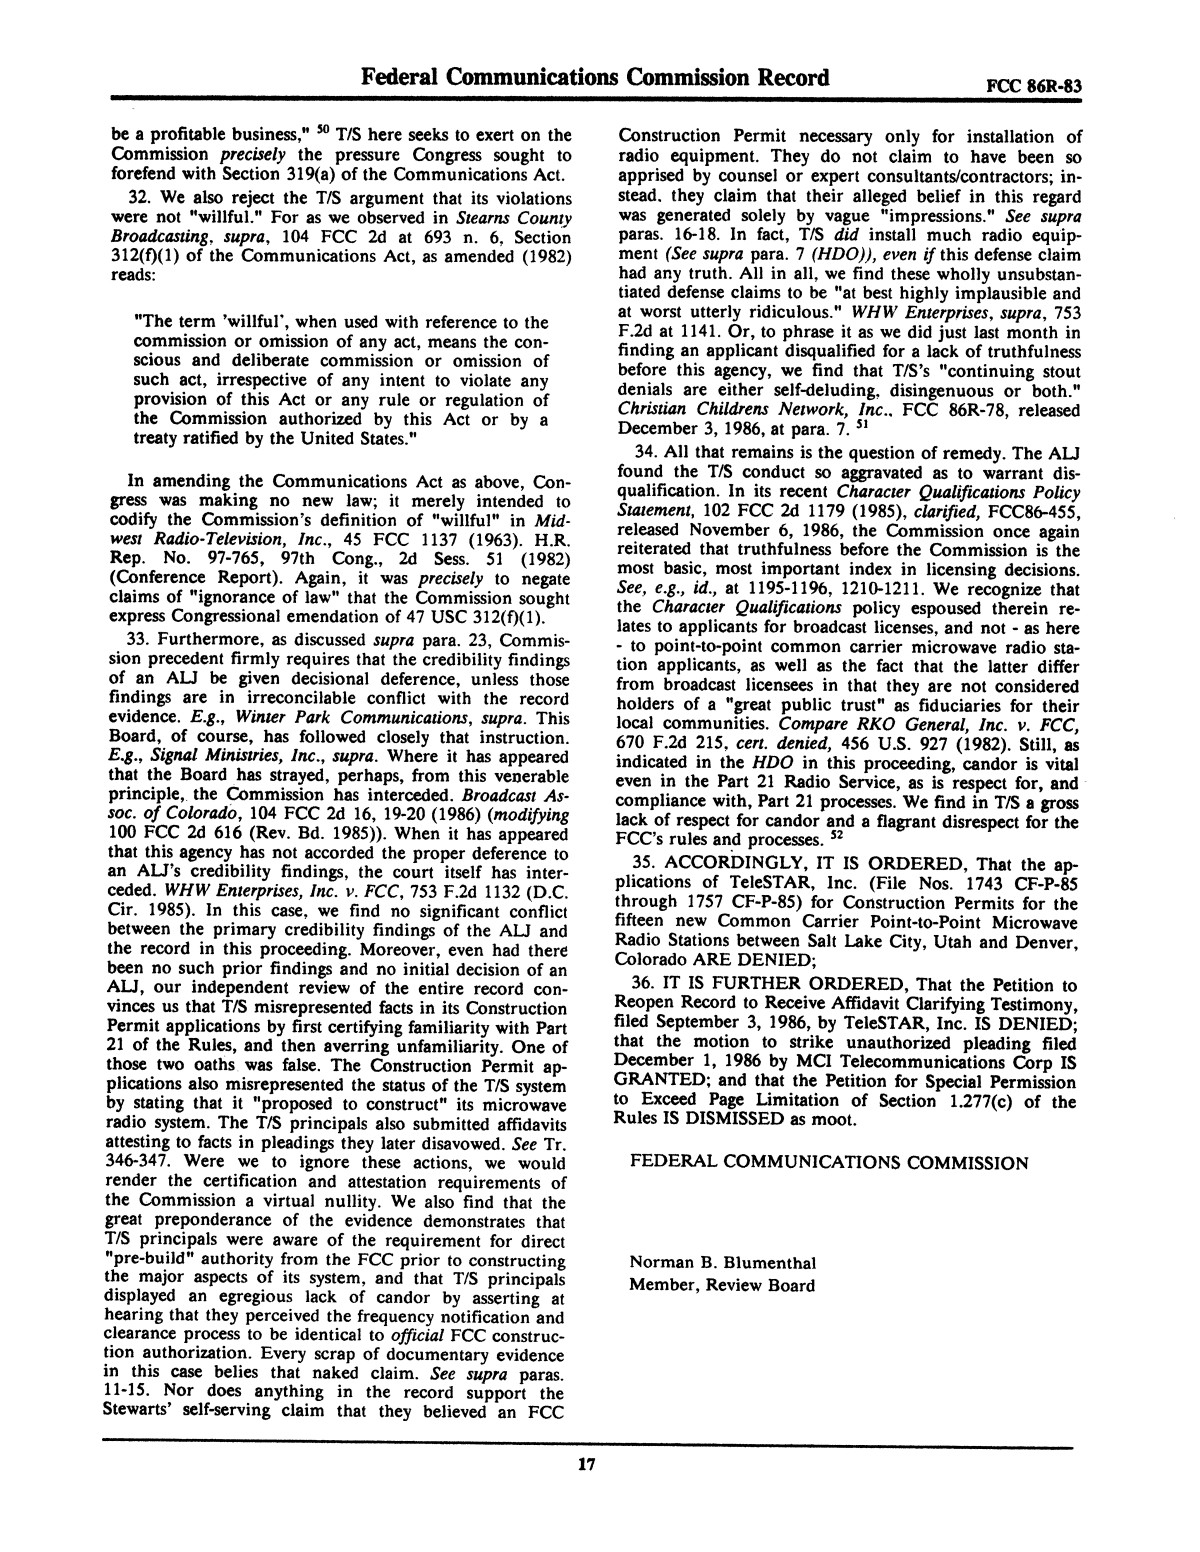 FCC Record, Volume 2, No. 1, Pages 1 to 409, January 5 - January 16, 1987                                                                                                      17